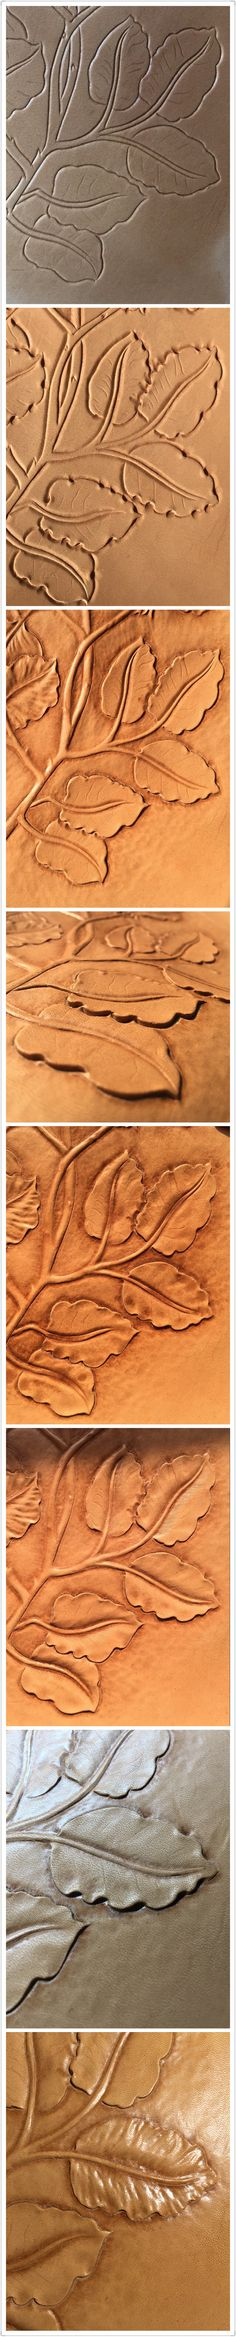 The procedure of Tooling  leaves#leather carving#leather